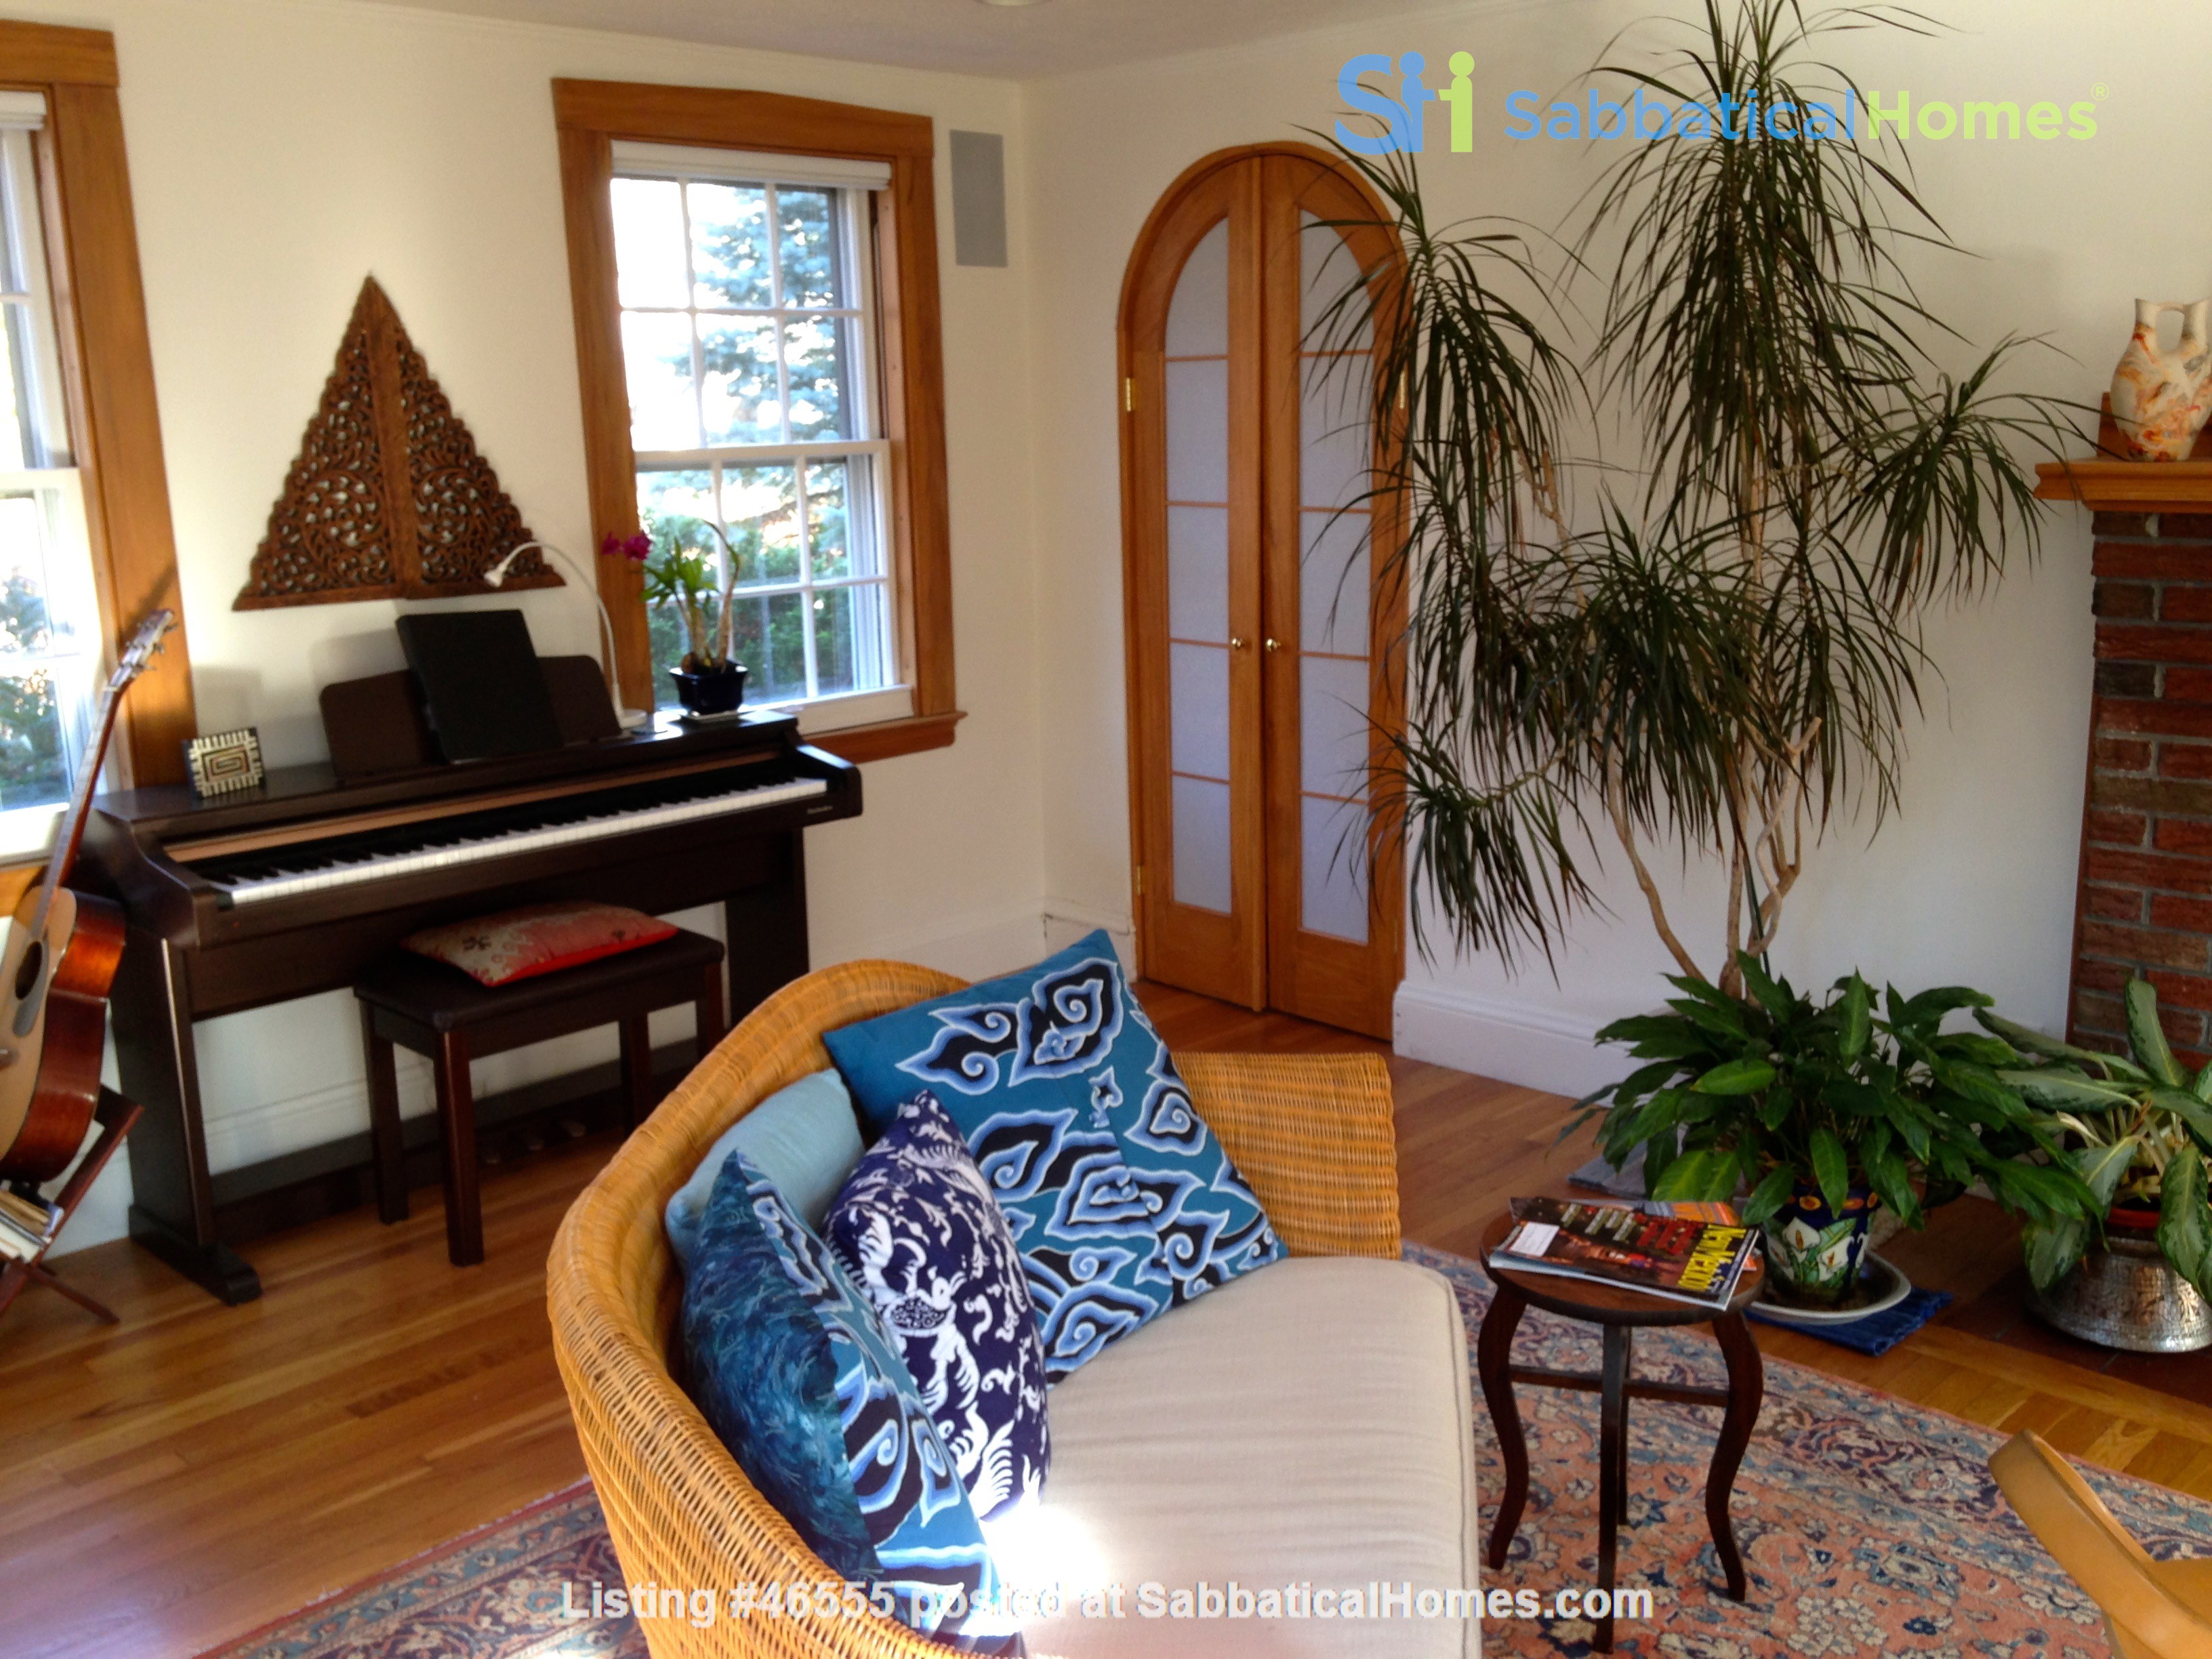 3BR furnished home in Newton on quiet street, next to park - walk to lake Home Rental in Newton, Massachusetts, United States 6